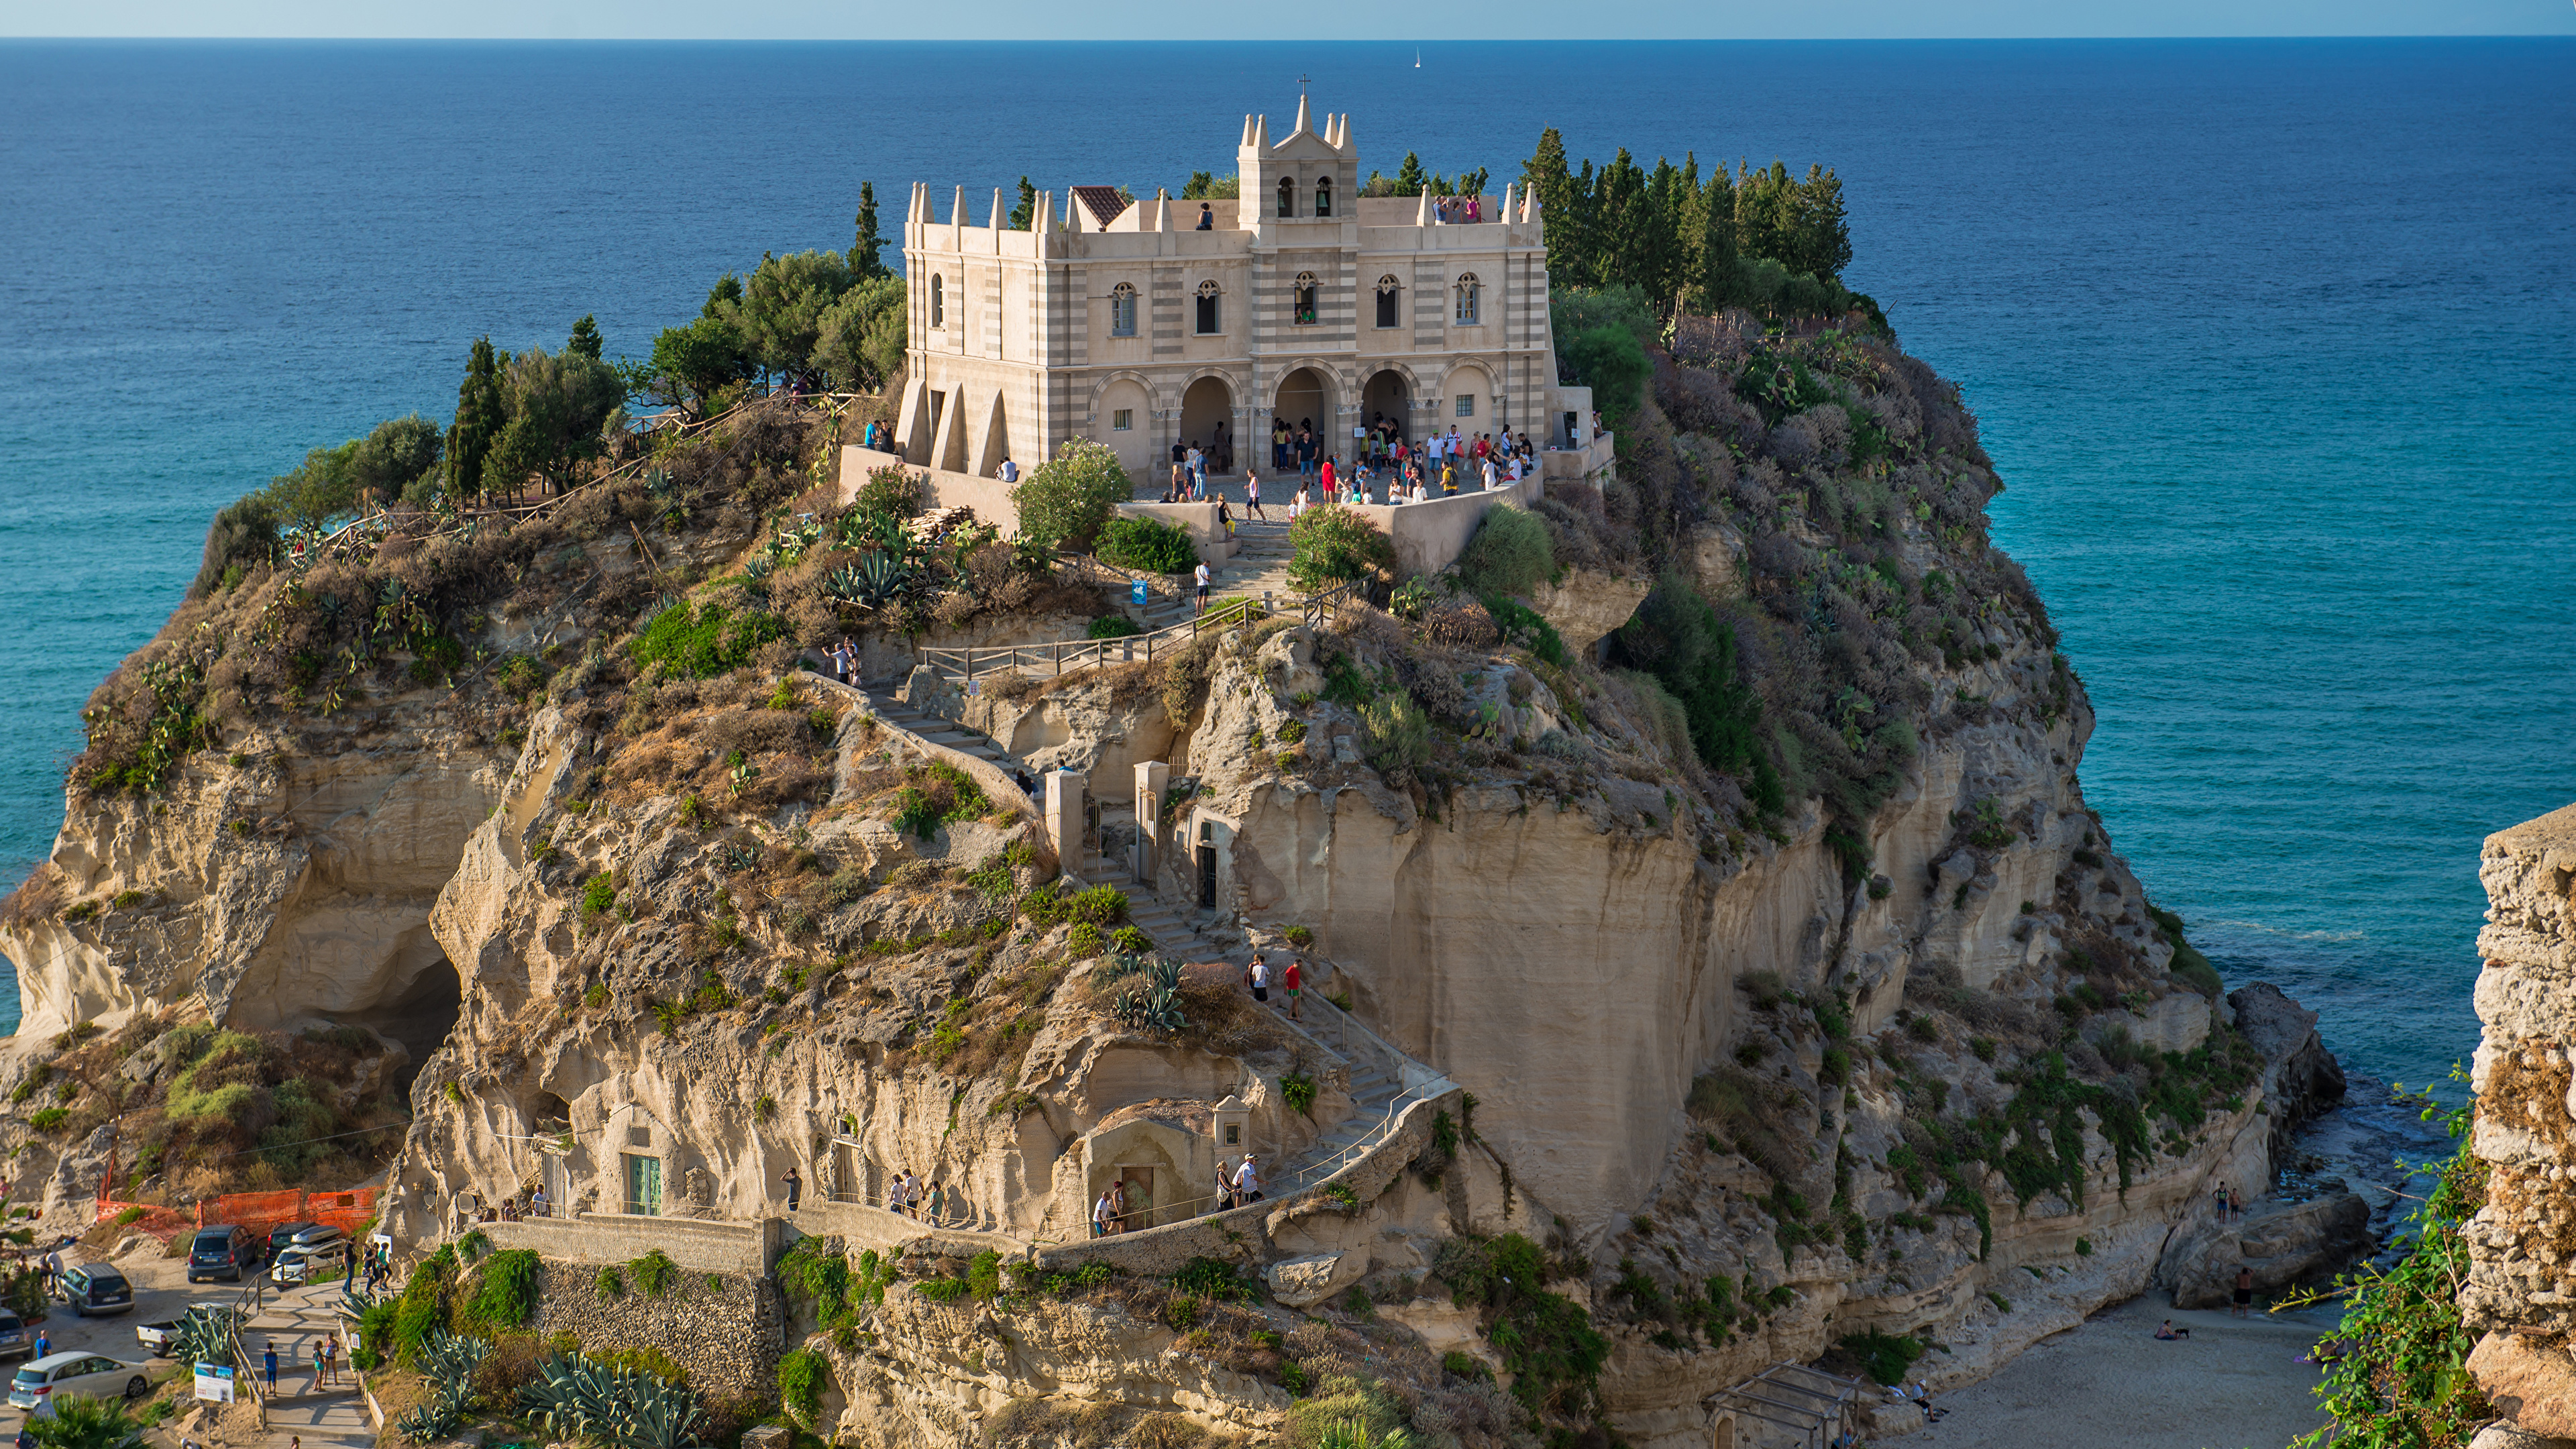 Photos Italy Tropea Cliff Stairs Cities Building 3840x2160 3840x2160